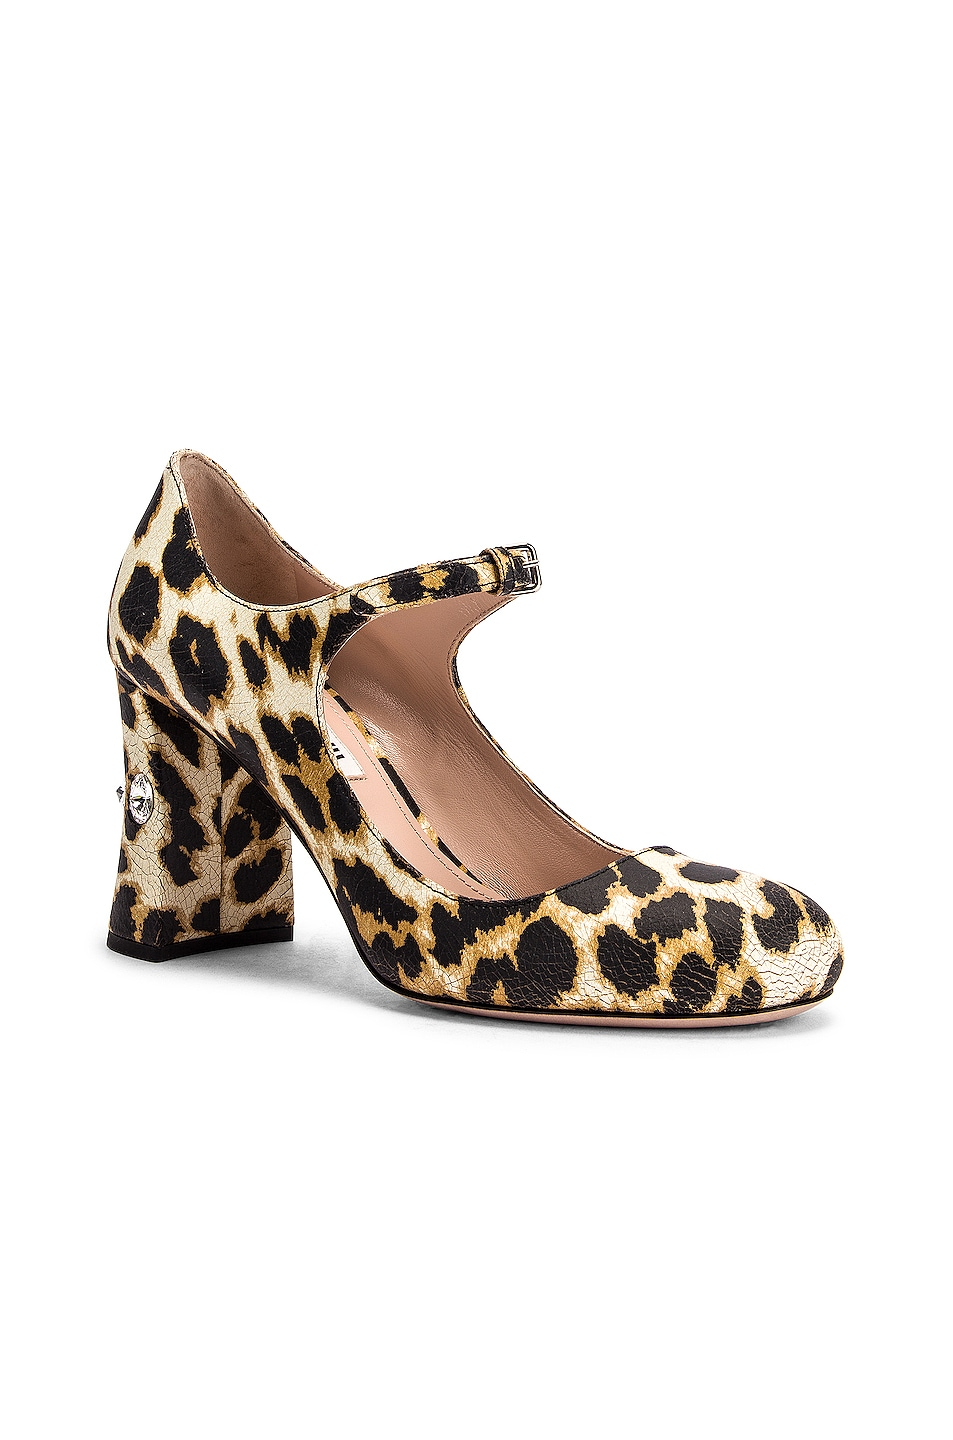 Image 2 of Miu Miu Jeweled Mary Jane Platform Heels in Leopard